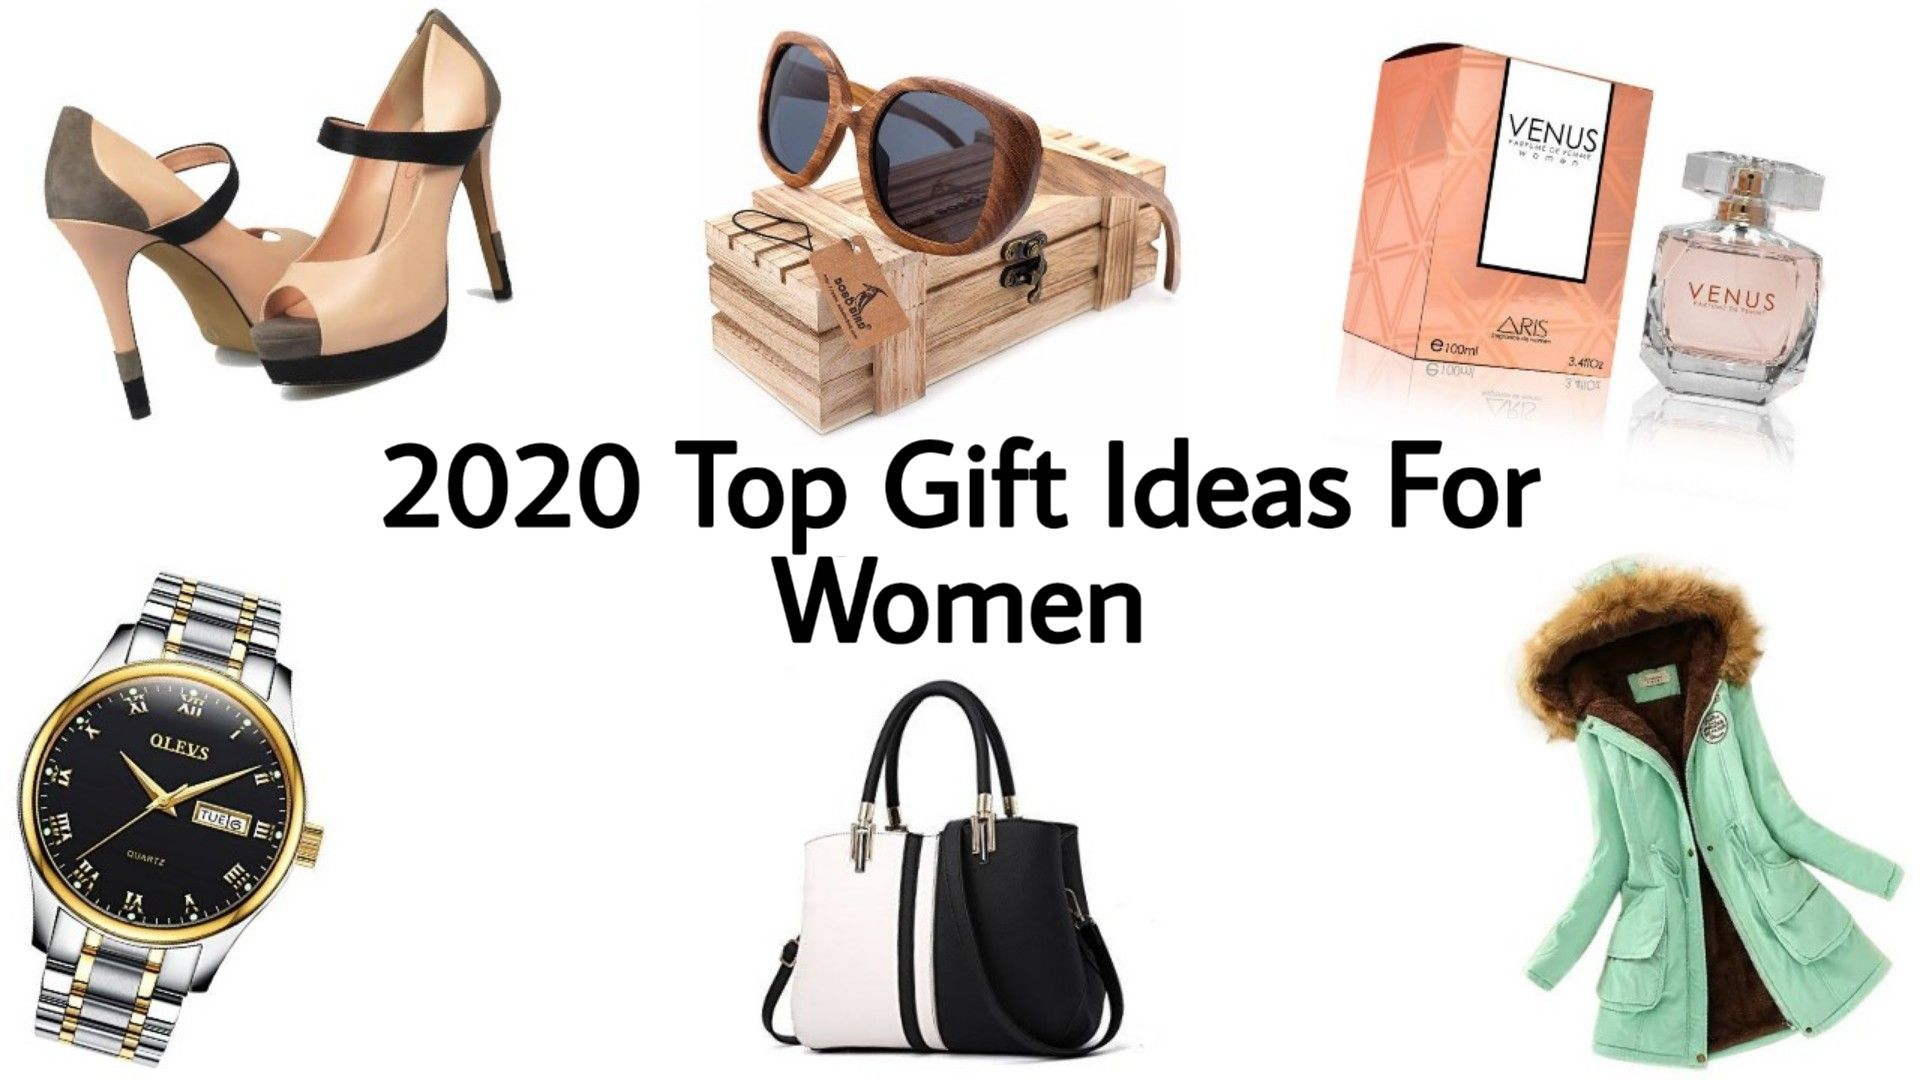 Best Christmas Gifts For Women 2020 Top 10 Birthday Gifts For Women Enfocrunch In 2020 Top Gifts For Women Christmas Gifts For Women Birthday Gifts For Women